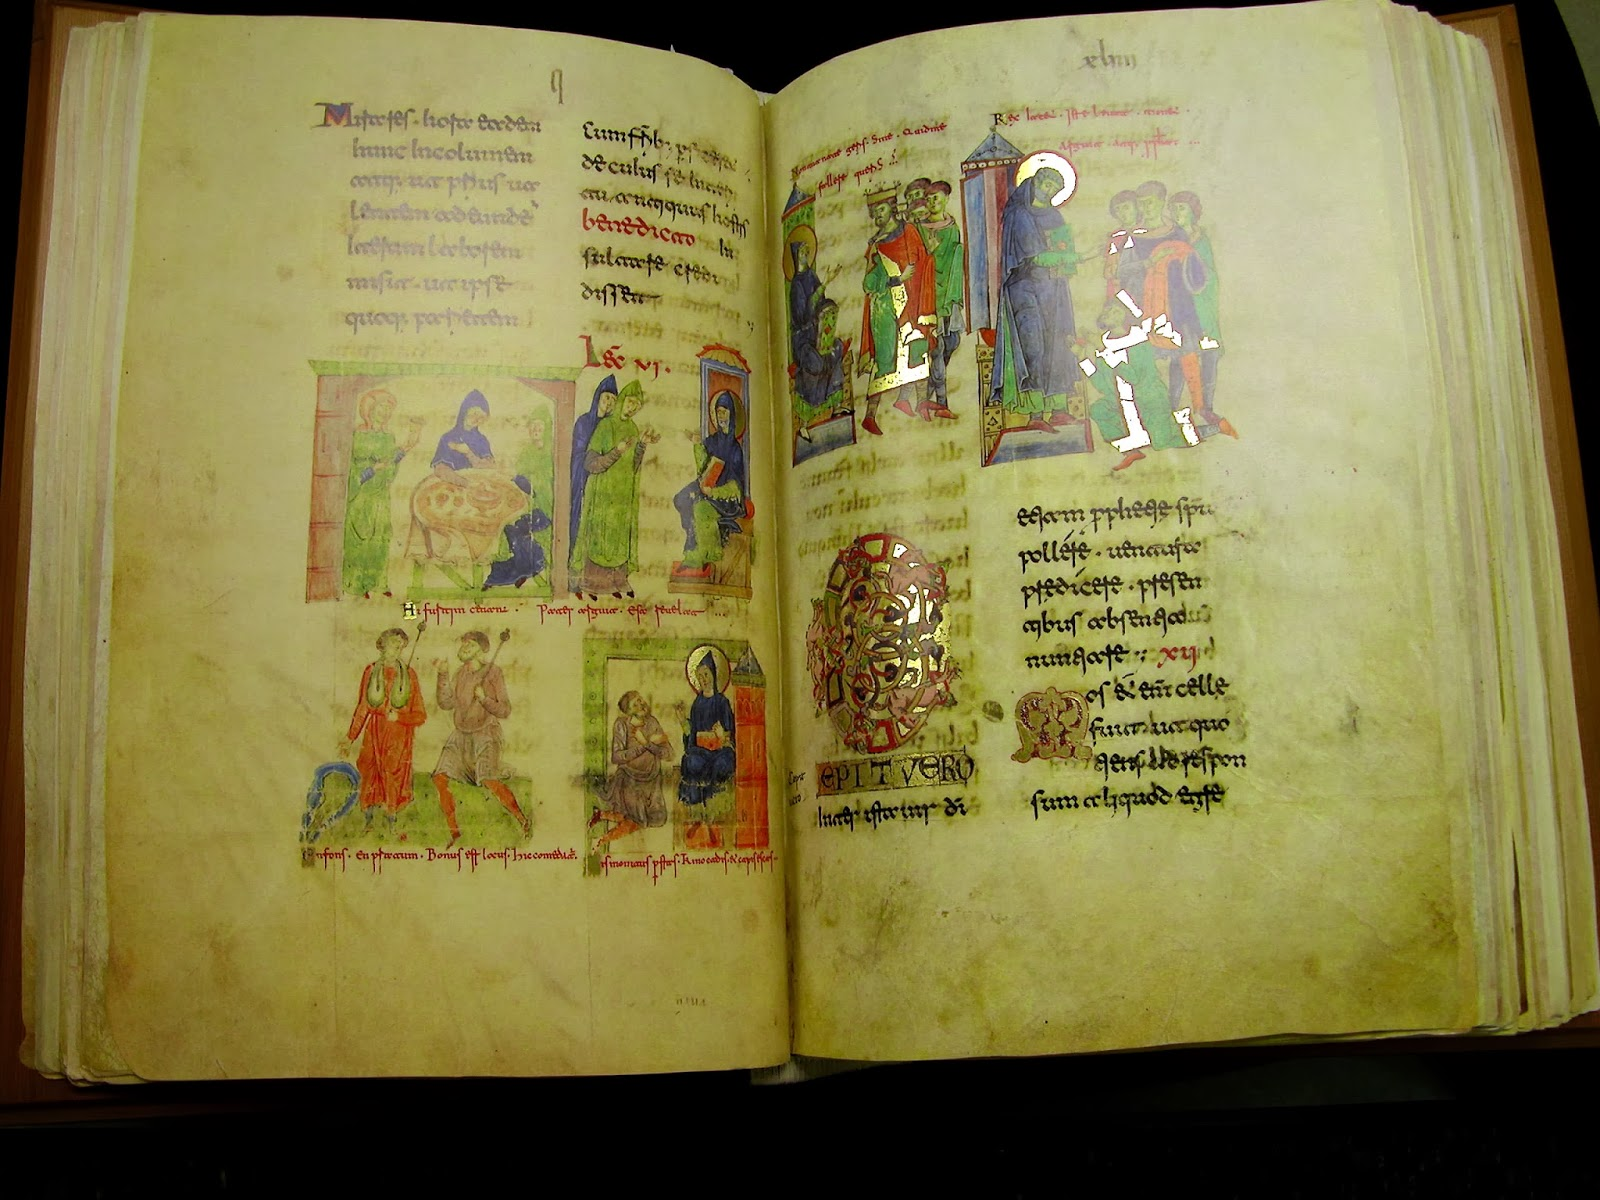 The Codex Benedictus